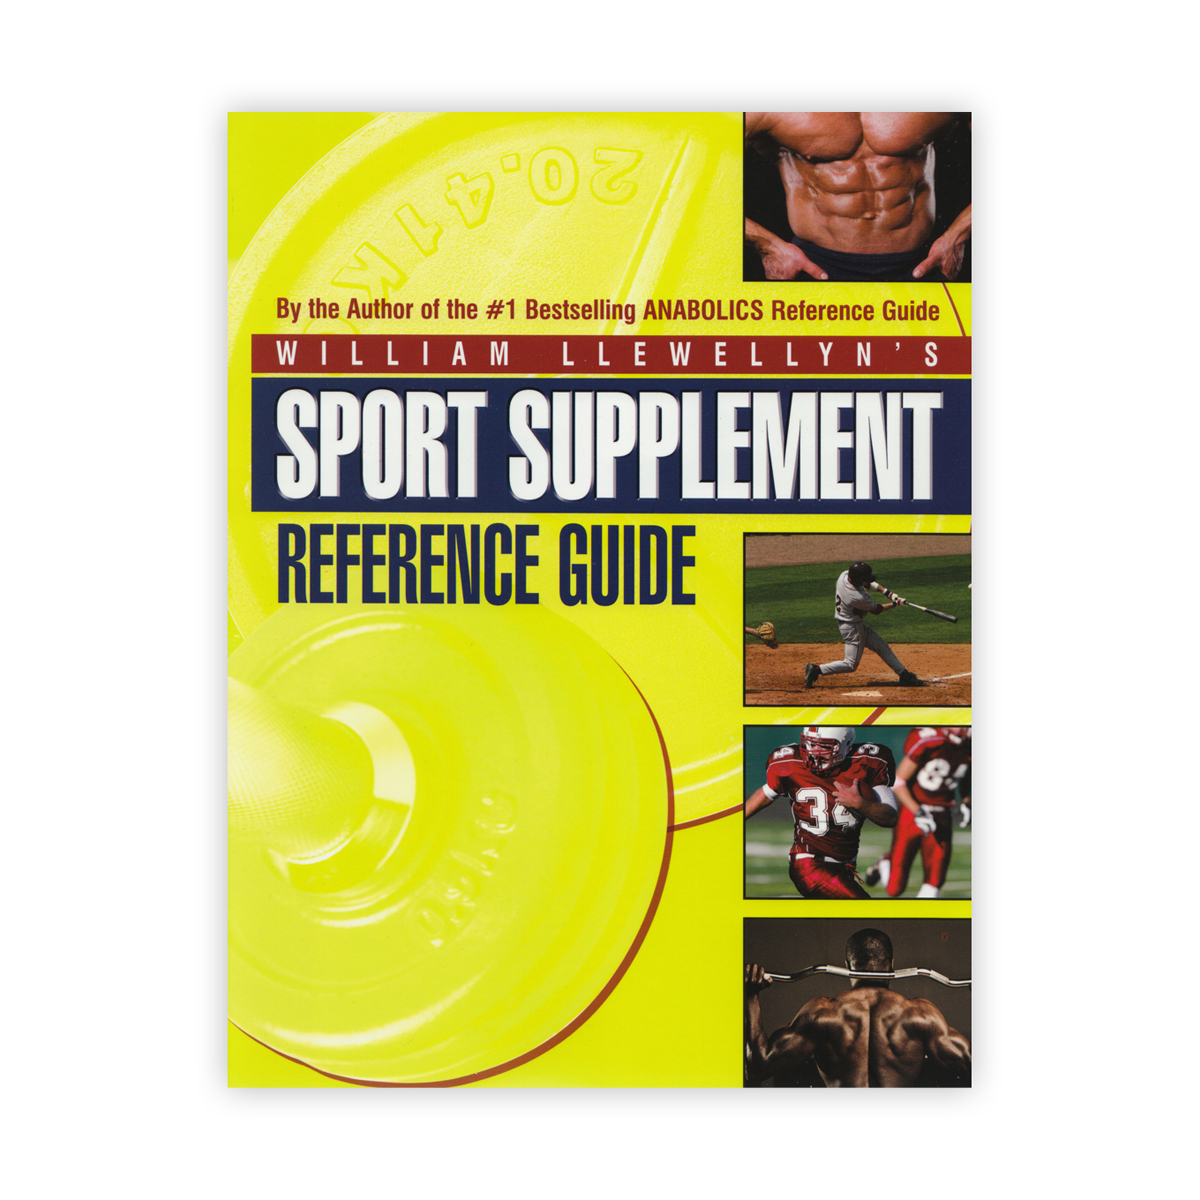 William Llewellyn's Sports Supplement Guide